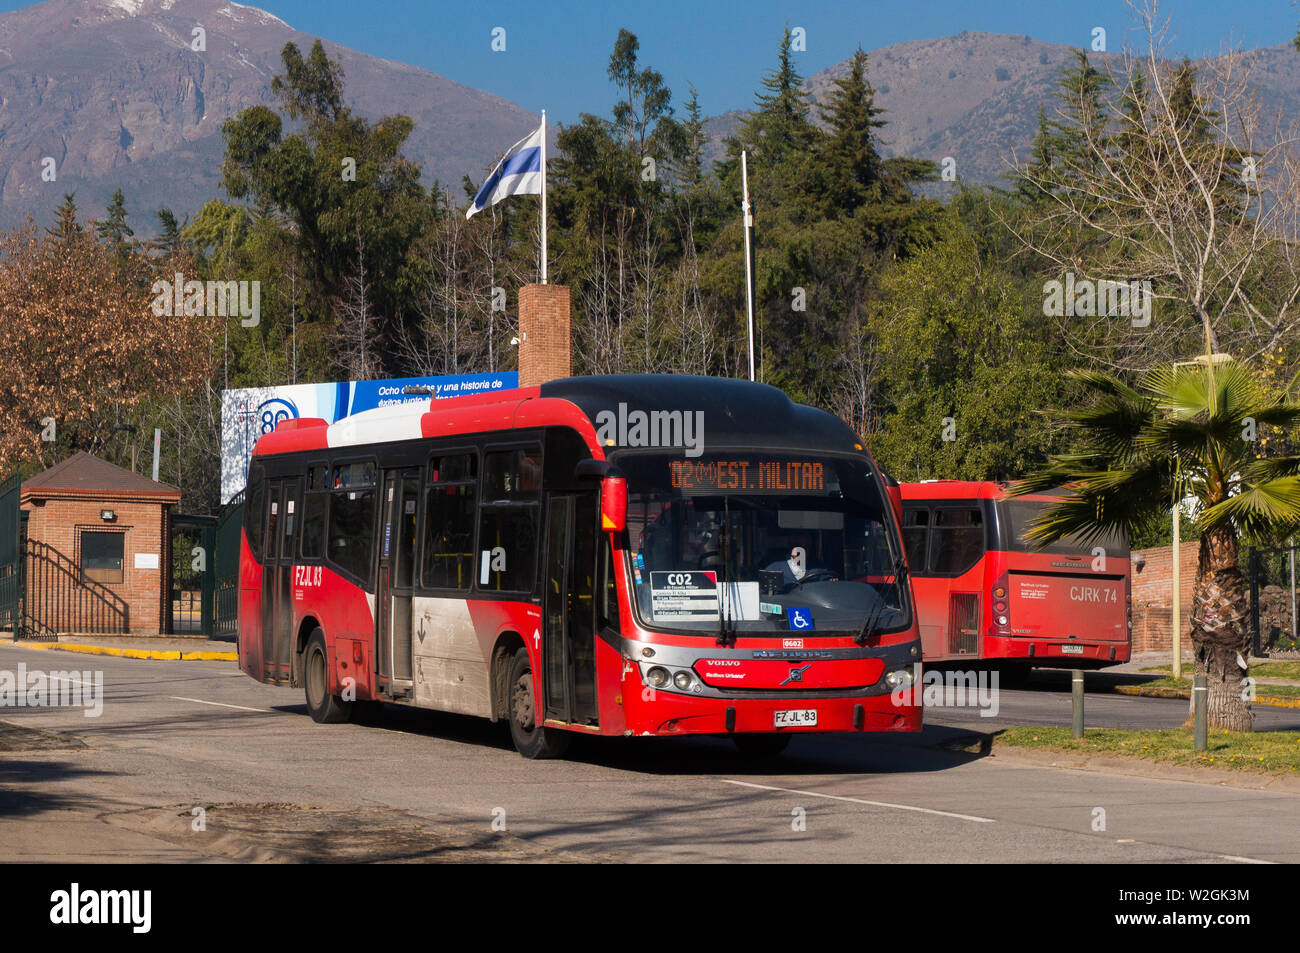 SANTIAGO, CHILE - JULY 2017: A red Transantiago bus in Las Condes - Stock Image